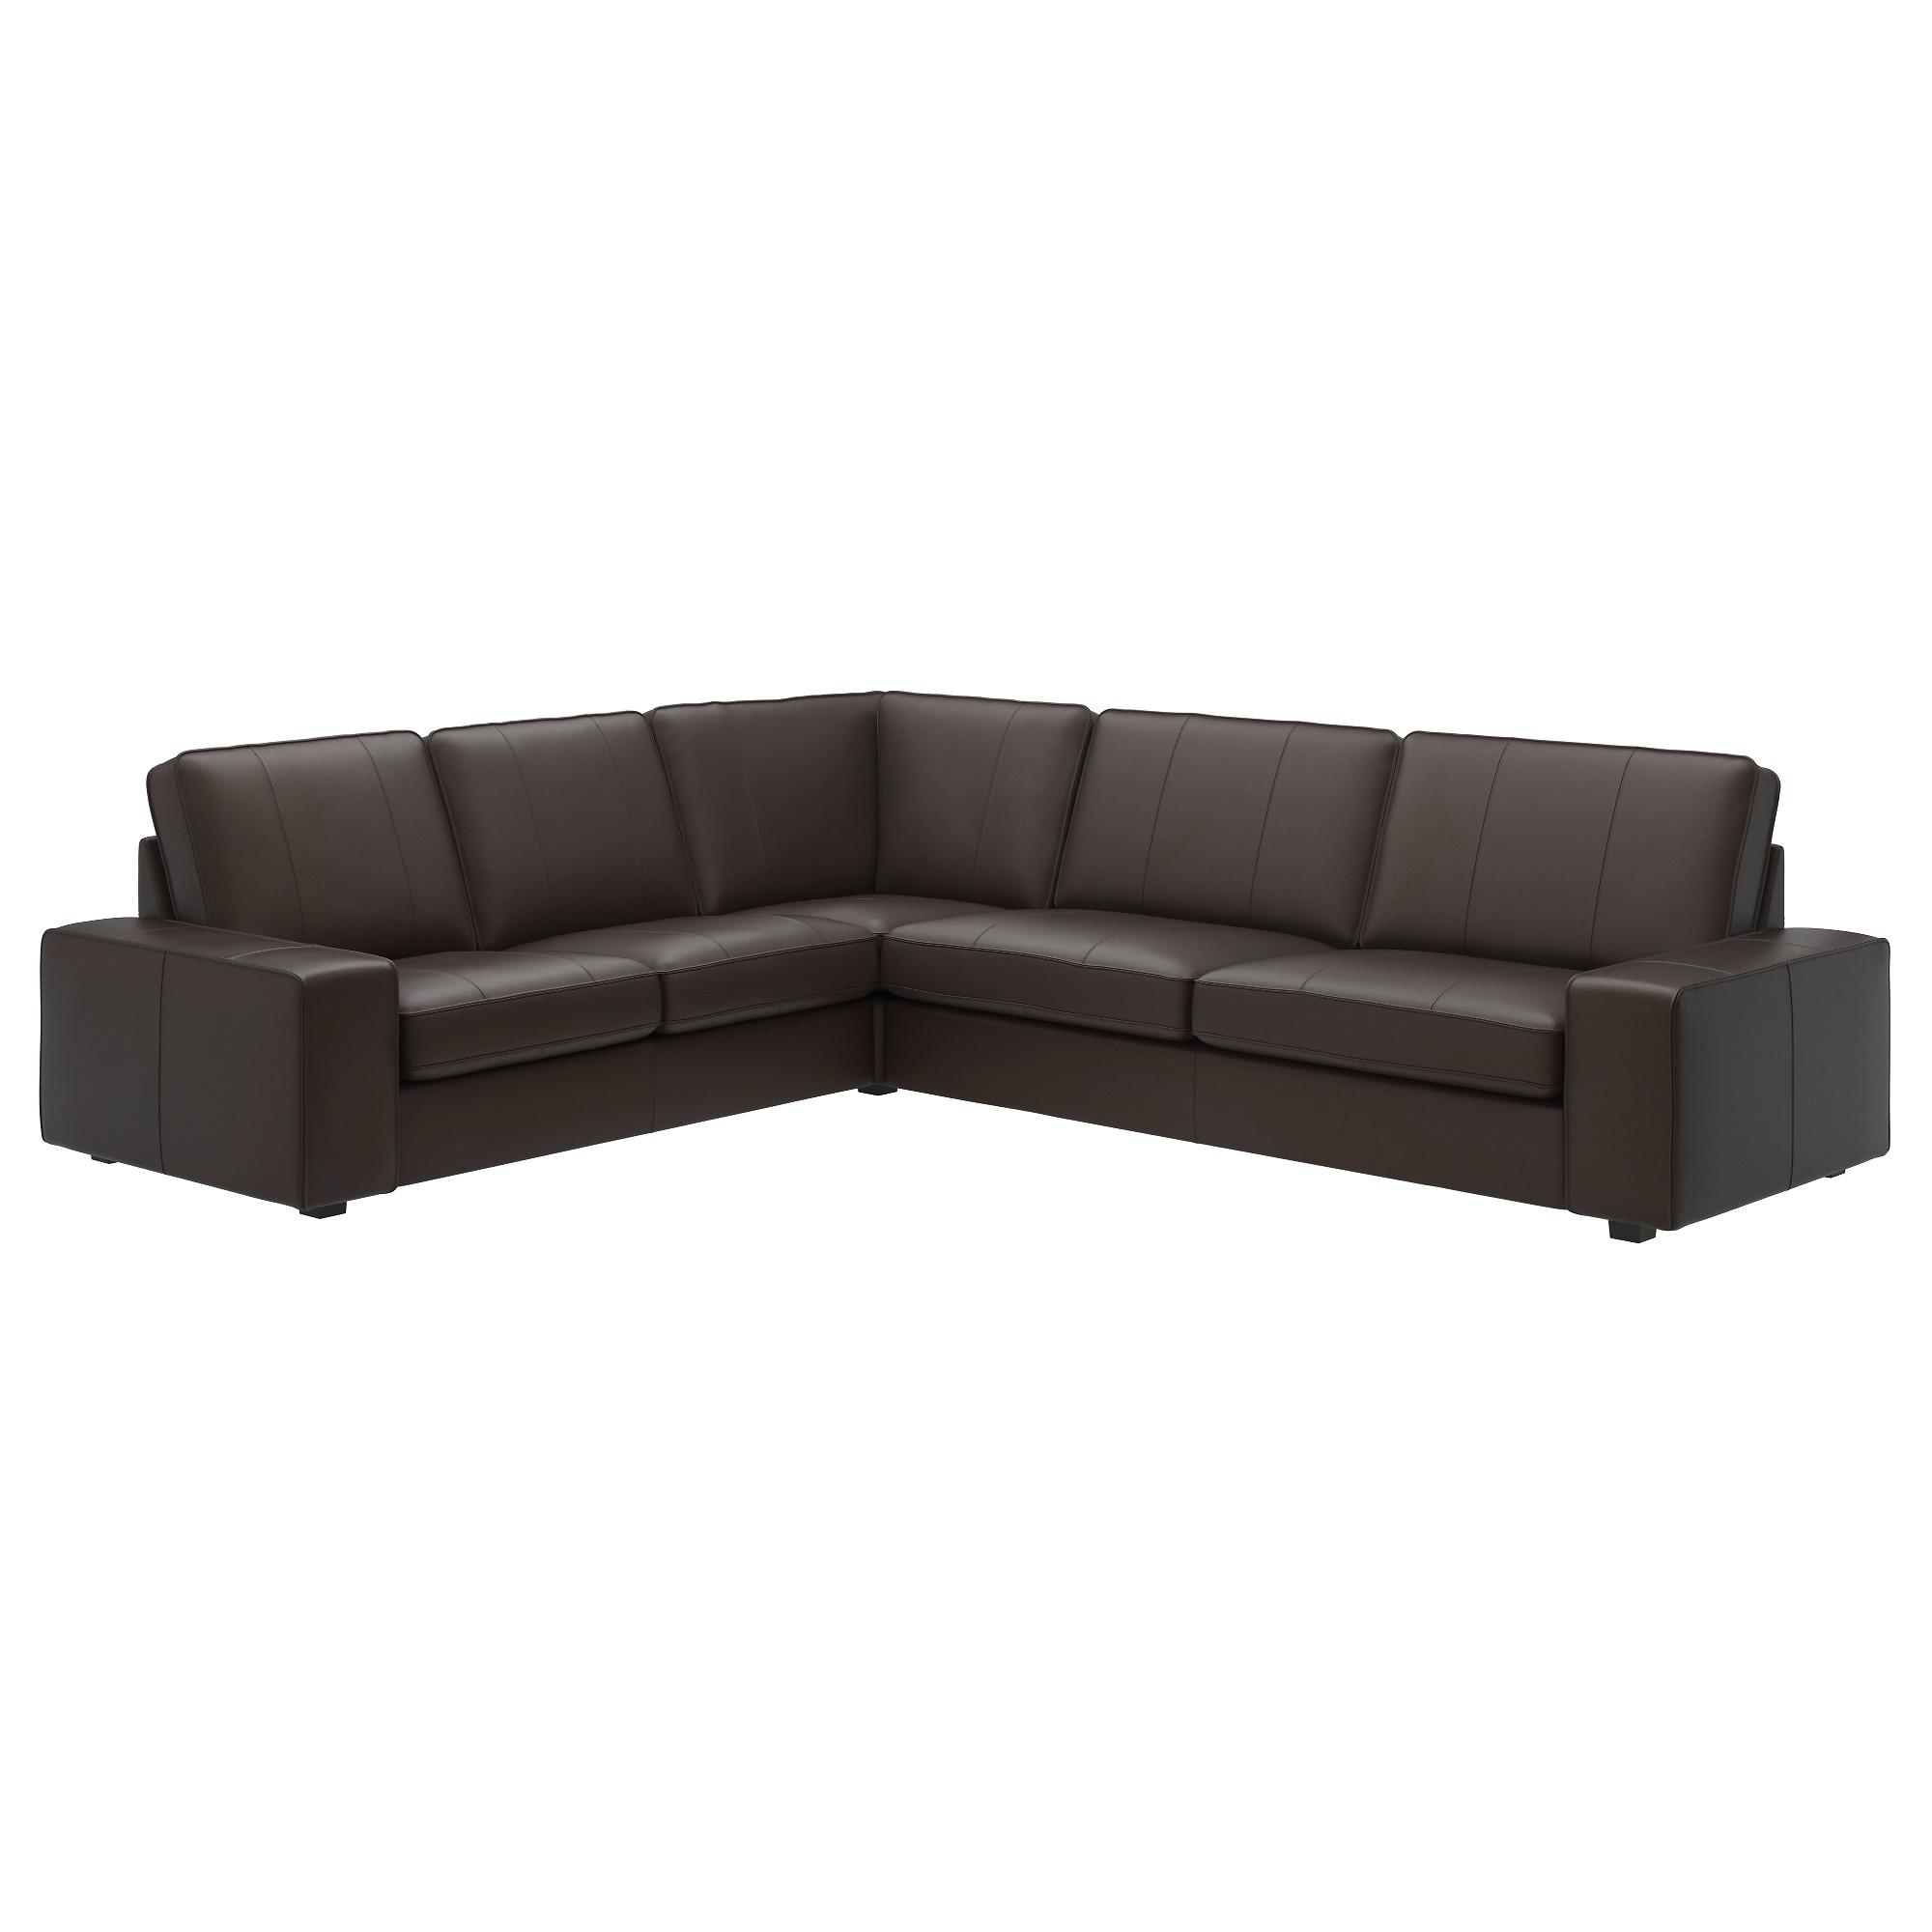 Leather/faux Leather Sectional Sofas – Ikea Throughout Black Leather Corner Sofas (View 14 of 20)